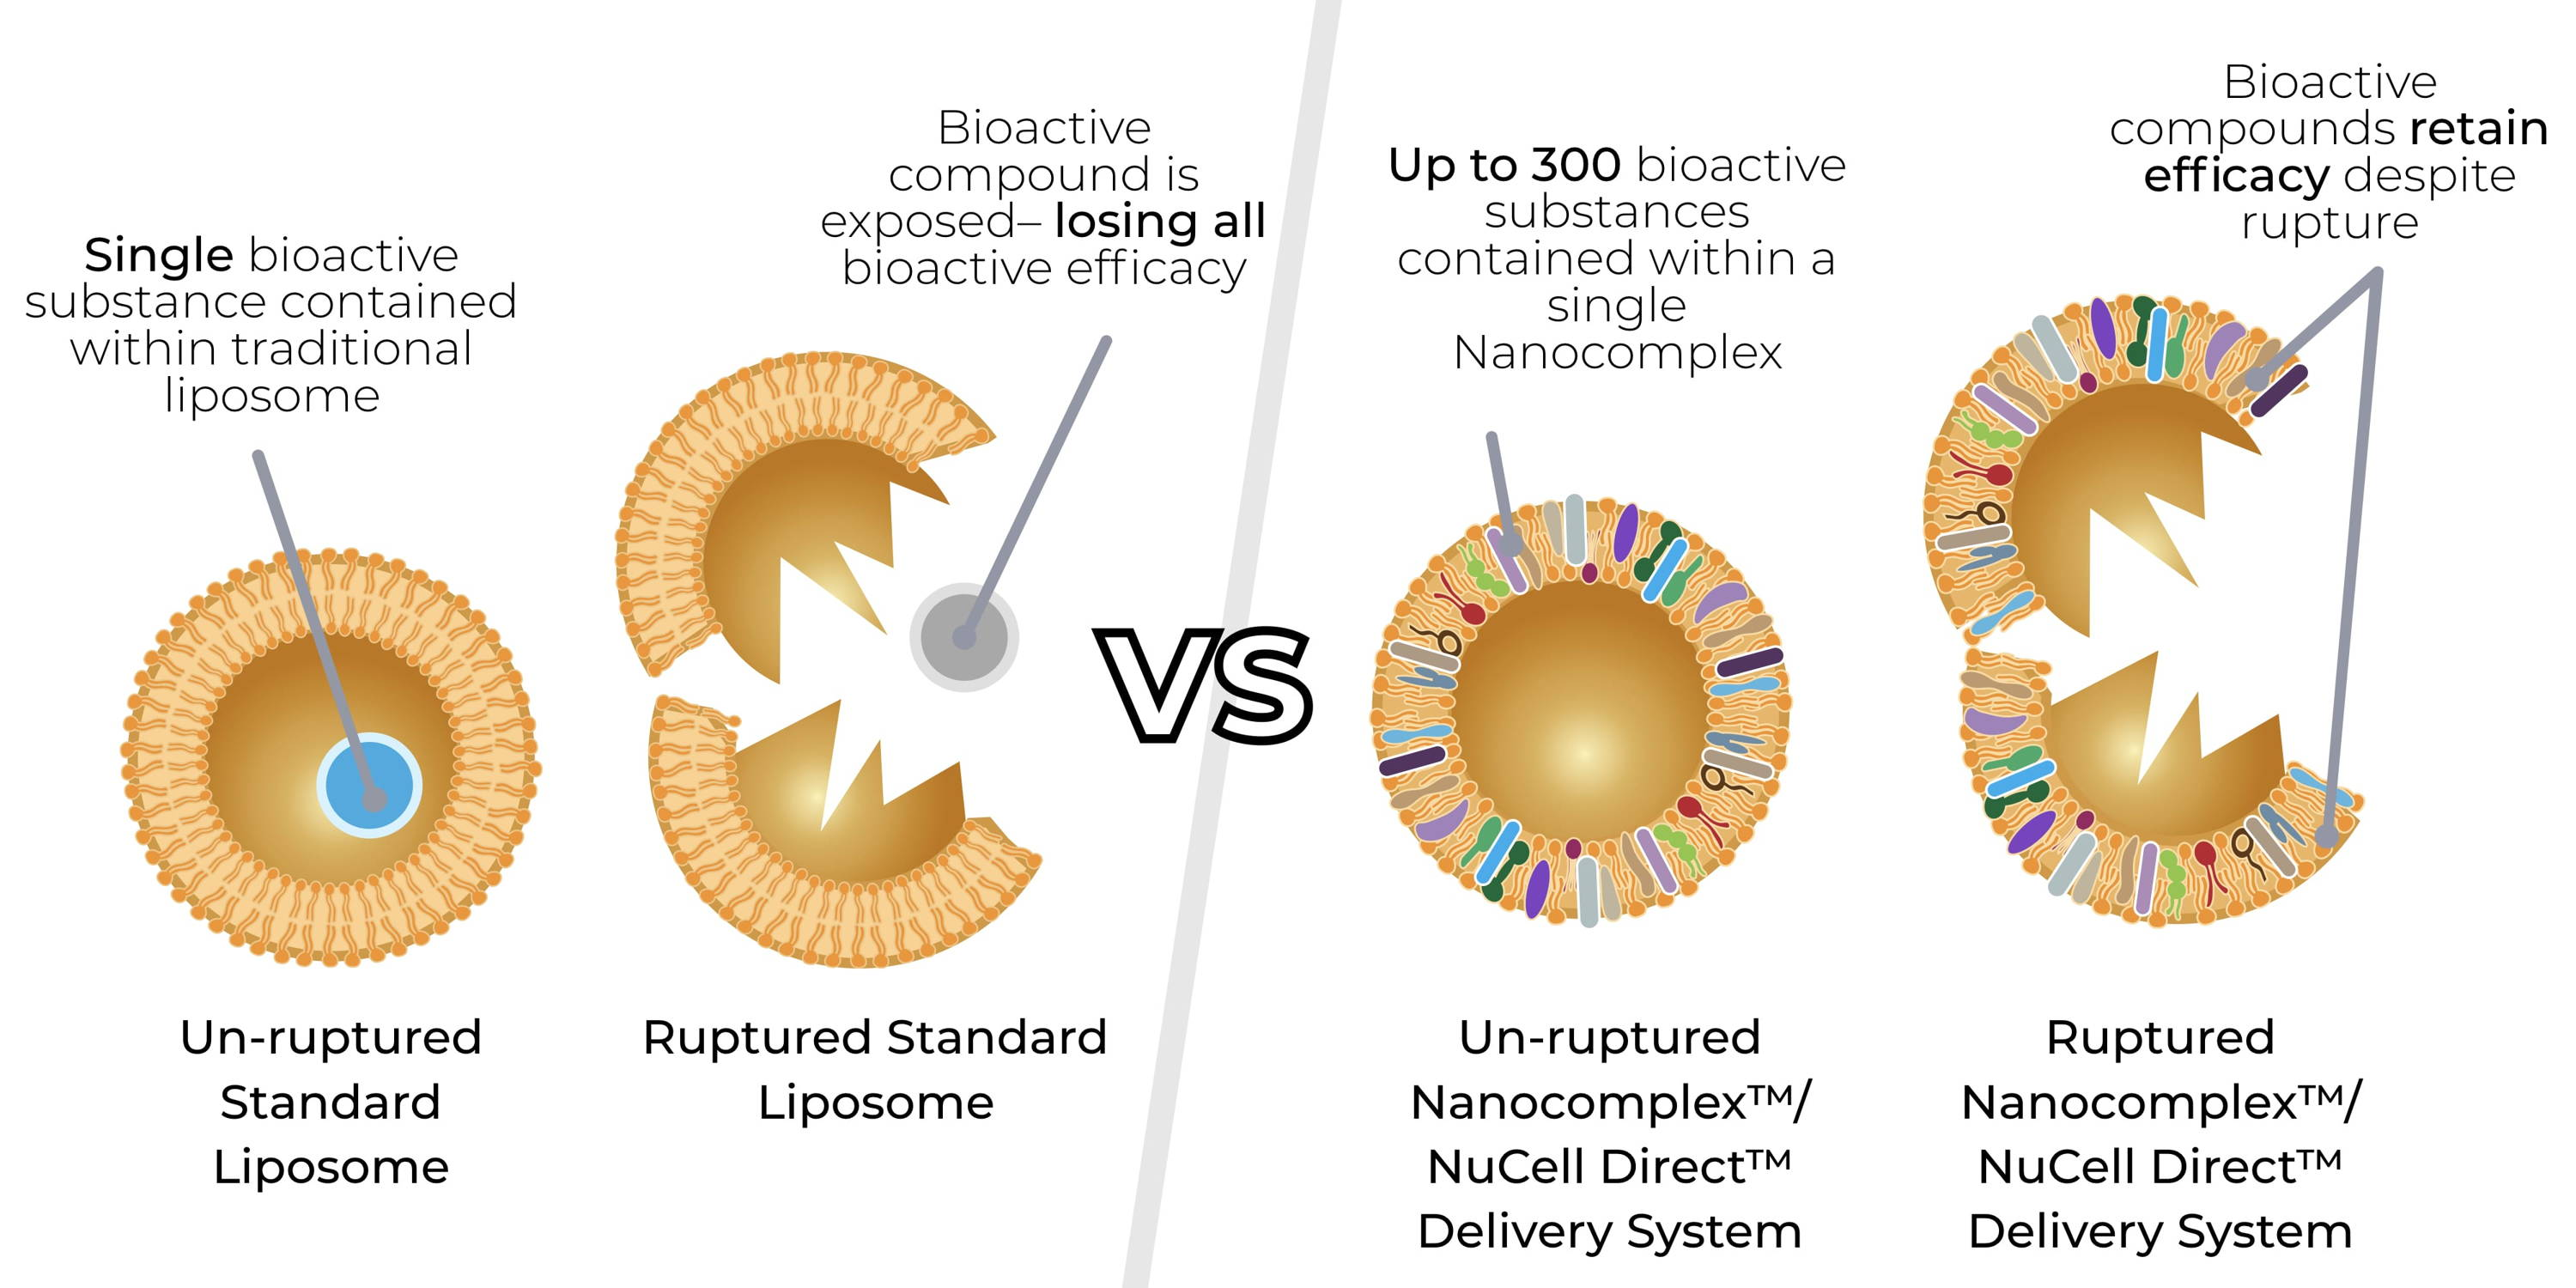 Figure 4. Traditional liposomal delivery system vs. Nanocomplex/NuCell Direct™ delivery system